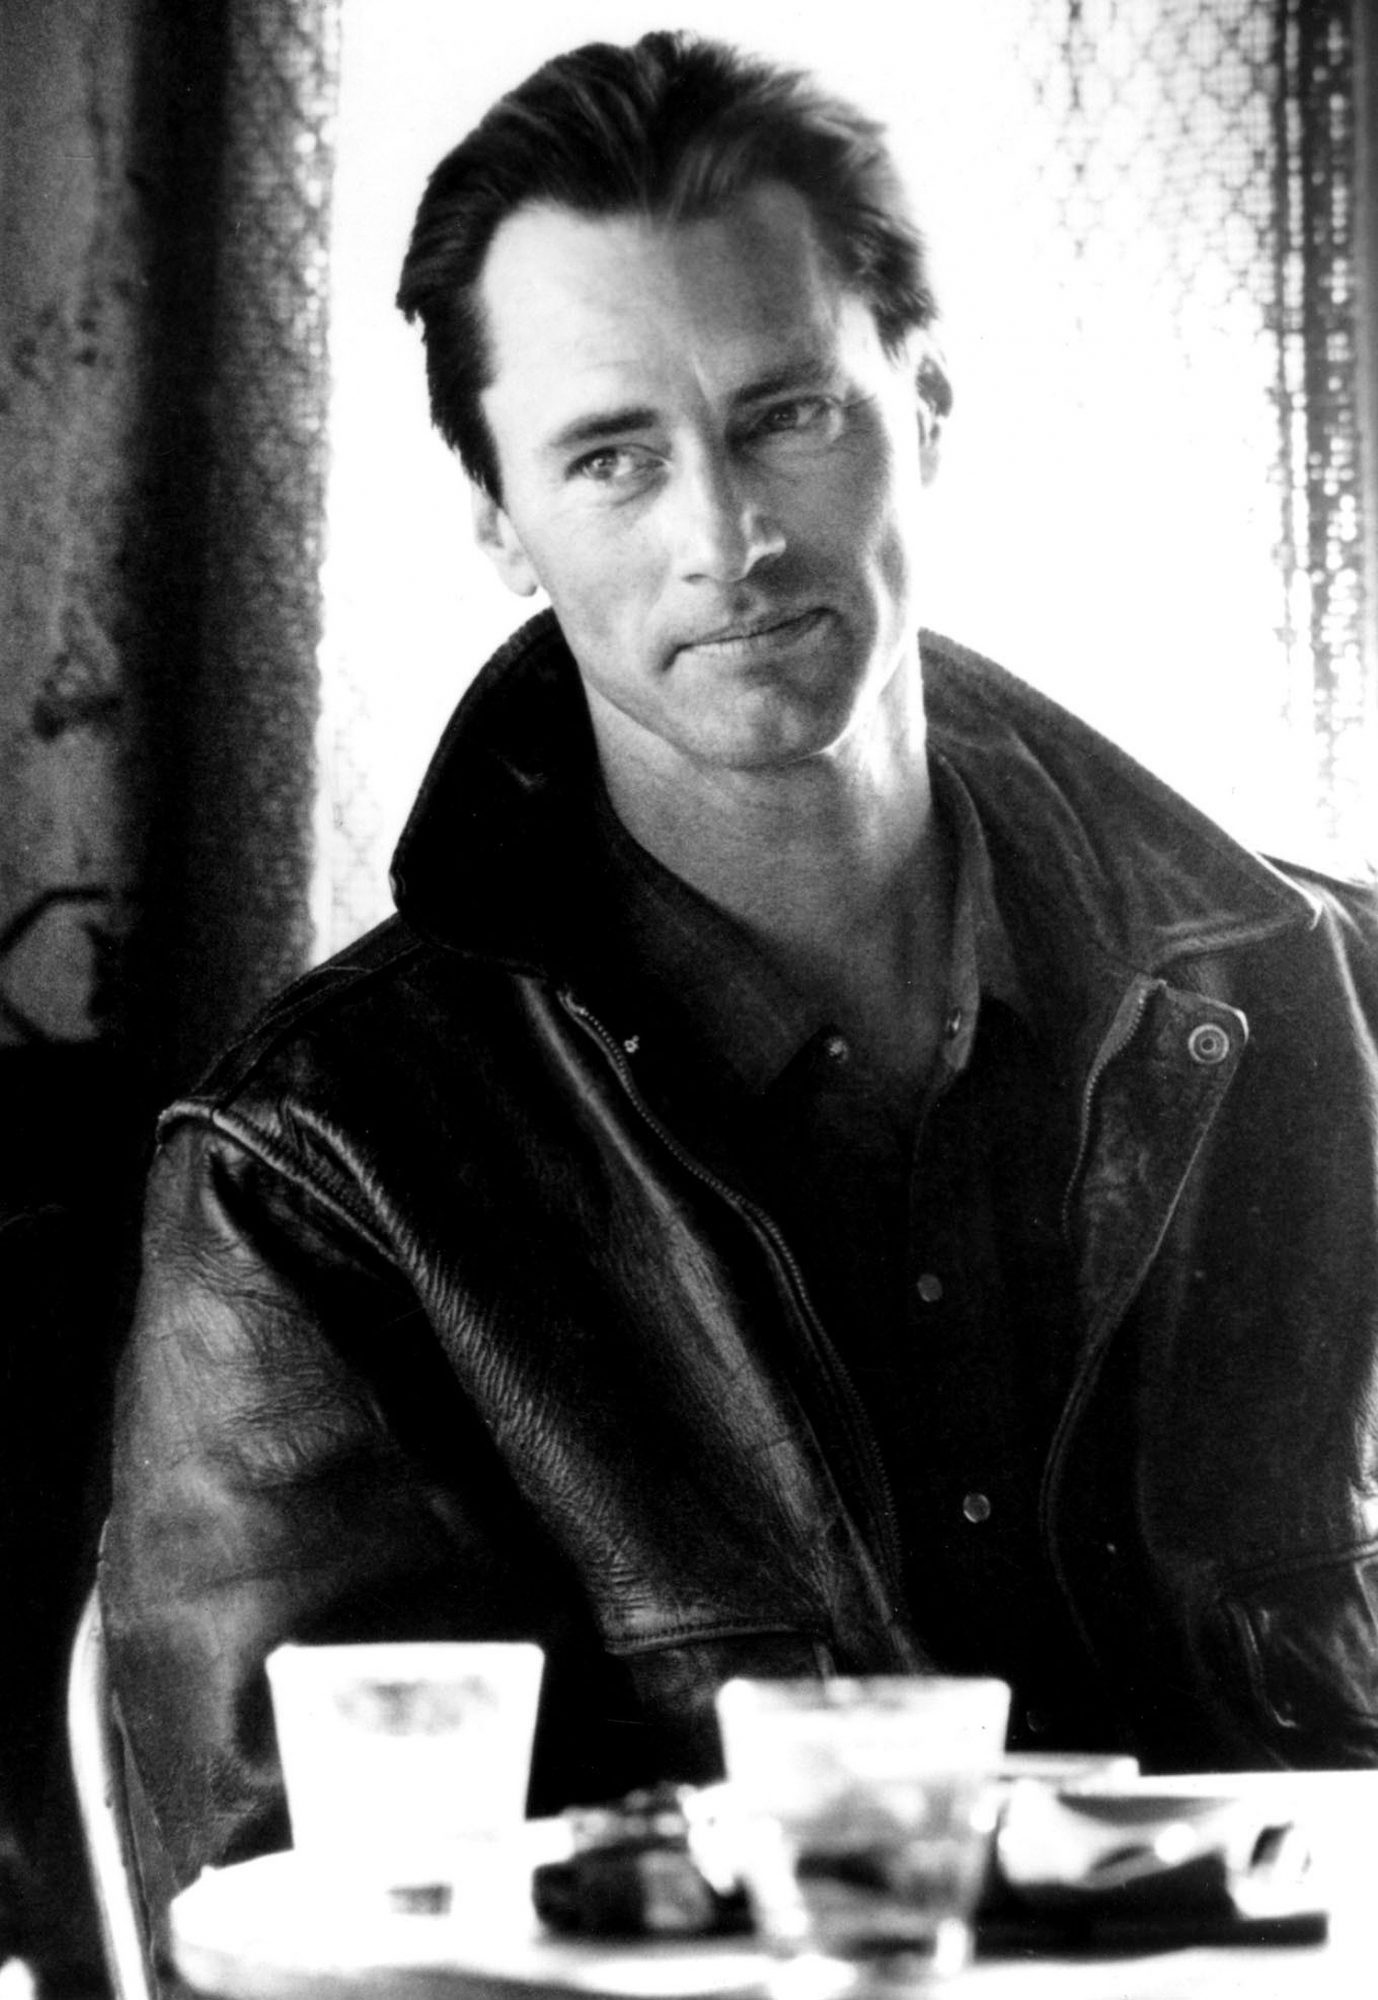 THE RIGHT STUFF, Sam Shepard, 1983, ©Warner Bros./Courtesy: Everett Collection.